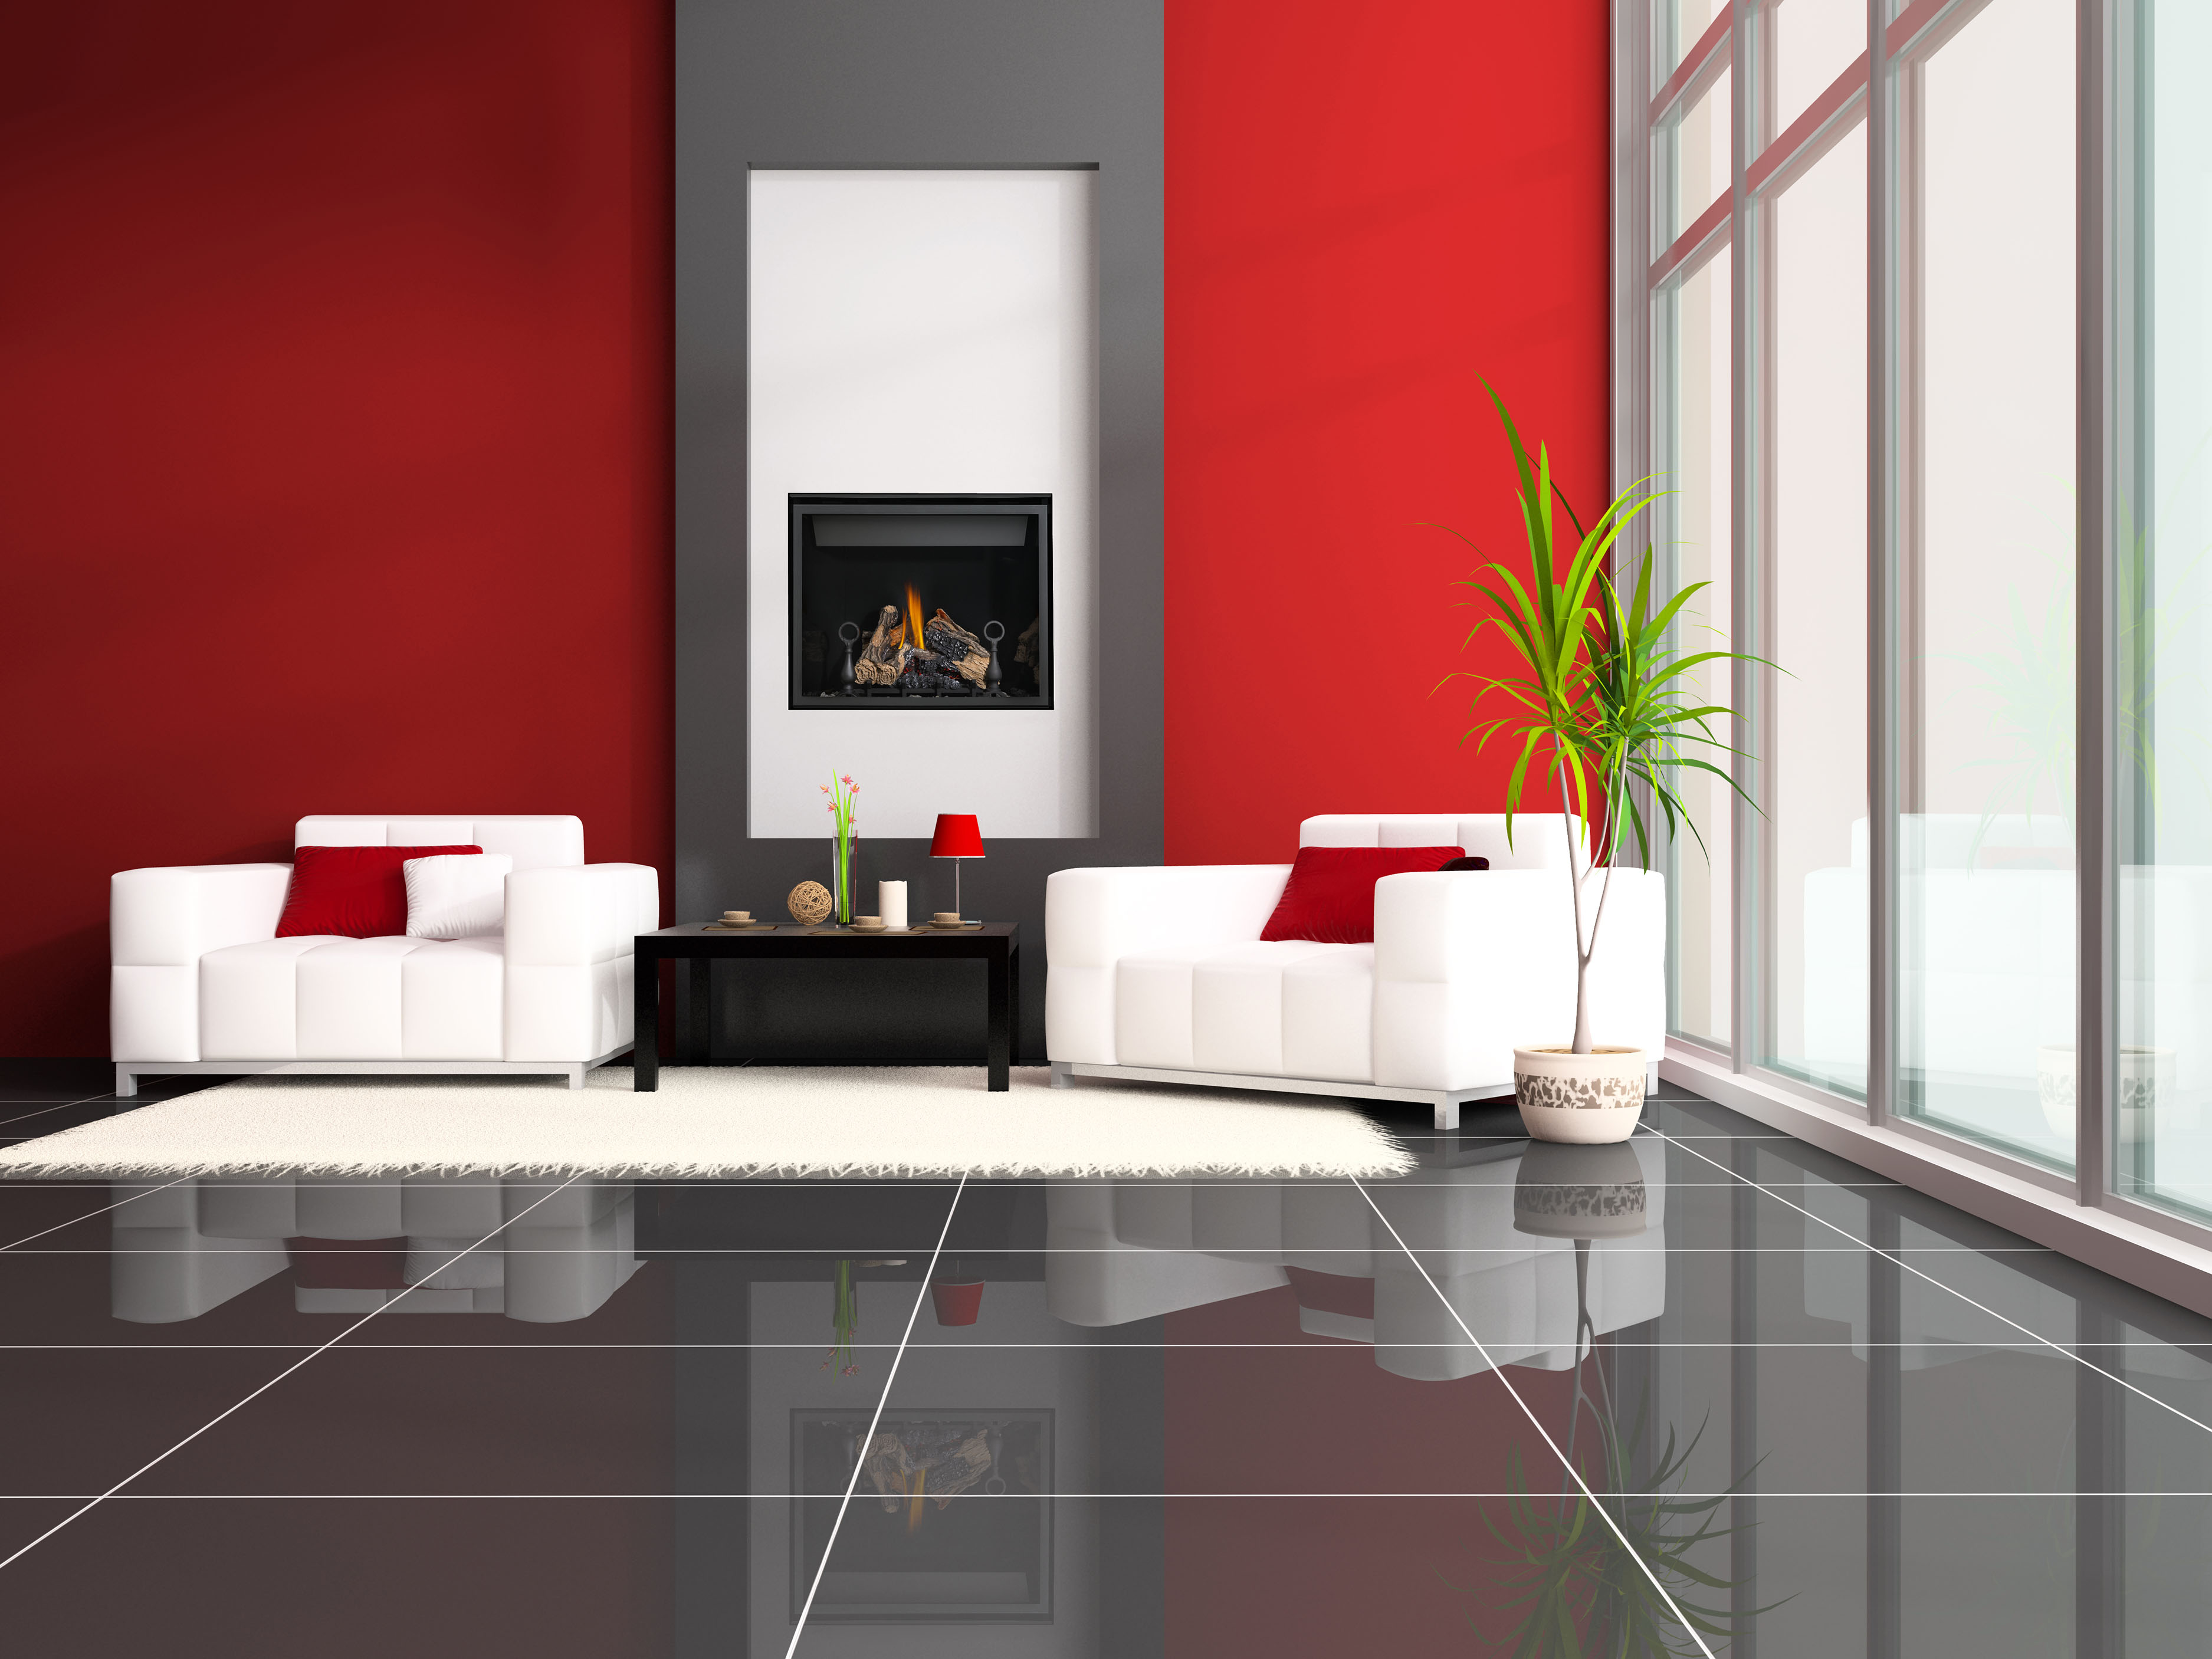 black electric napoleon fireplace with decorative mantel kit matched with red wall plus white sofa set - Decorating Ideas For Living Room With Fireplace